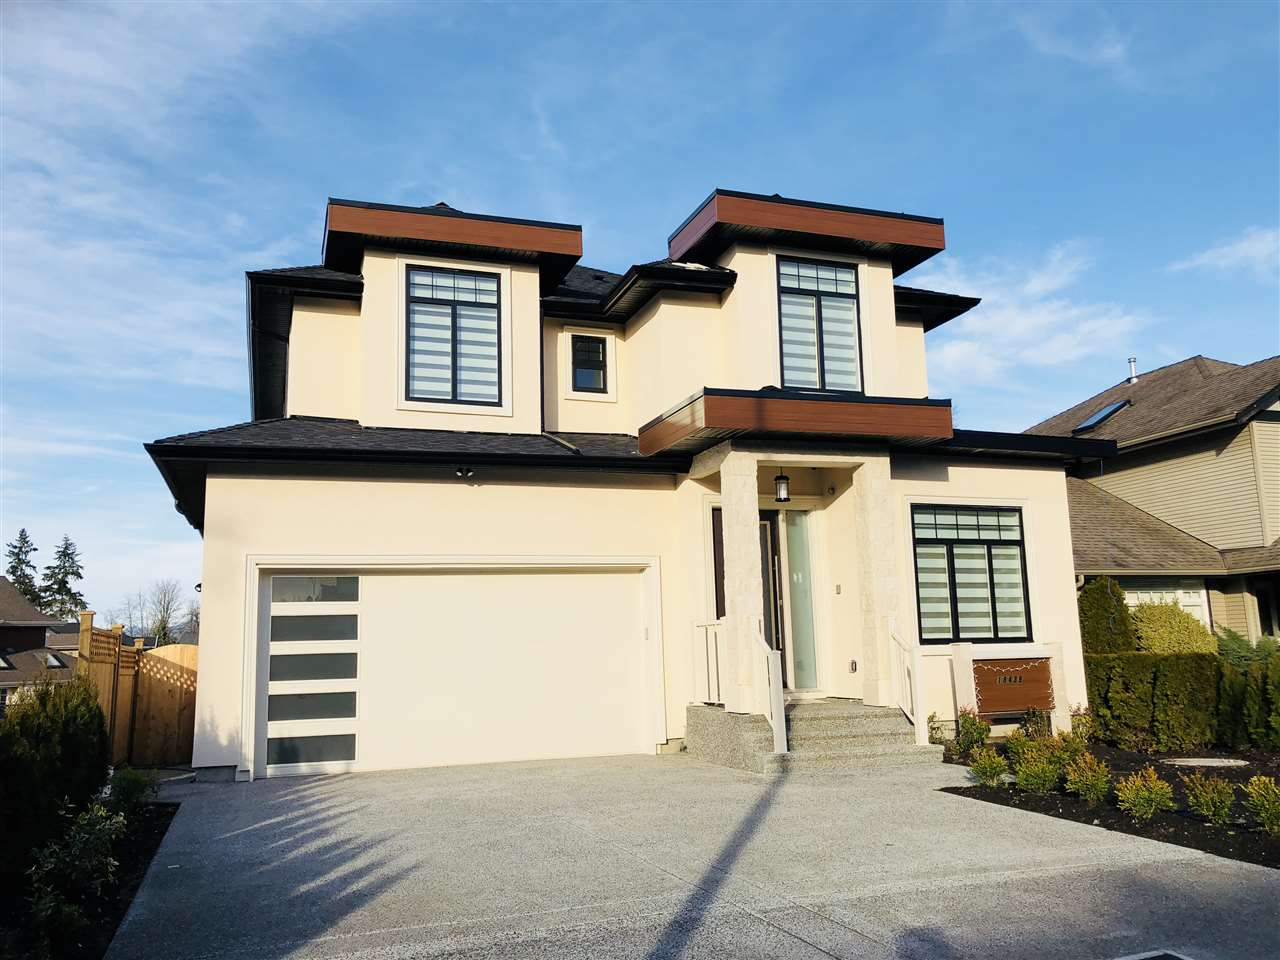 LOOK NO FURTHER, this home has the WOW factor.  Come & enjoy the ambiance & lifestyle offered in this stunning custom built 3731 sqft hme in Cloverdale Estates. Features 6 bdrm/6 bath & den, 2 bdrm legal suite, wainscoting, mosaic tiles, grand gourmet kit, wok kit, coiffeur 10ft ceilings, spa like bath amenities w/rainforest jet shower, each bdrm w/ own ensuite. energy eff hot water, alarm, home warranty, surround sound music throughout the home, theatre room with bar, rope lighting and the list goes on.  Steps to all shopping and schools.  Come see for yourself, the ultimate in luxury & outstanding attention to detail.  Enjoy your morning coffee and your 15 x 12 covered sundeck. It doesn't get better than this.  A PERFECT 10!!! OPEN HOUSE SUN. MAY 27th 1-4pm.